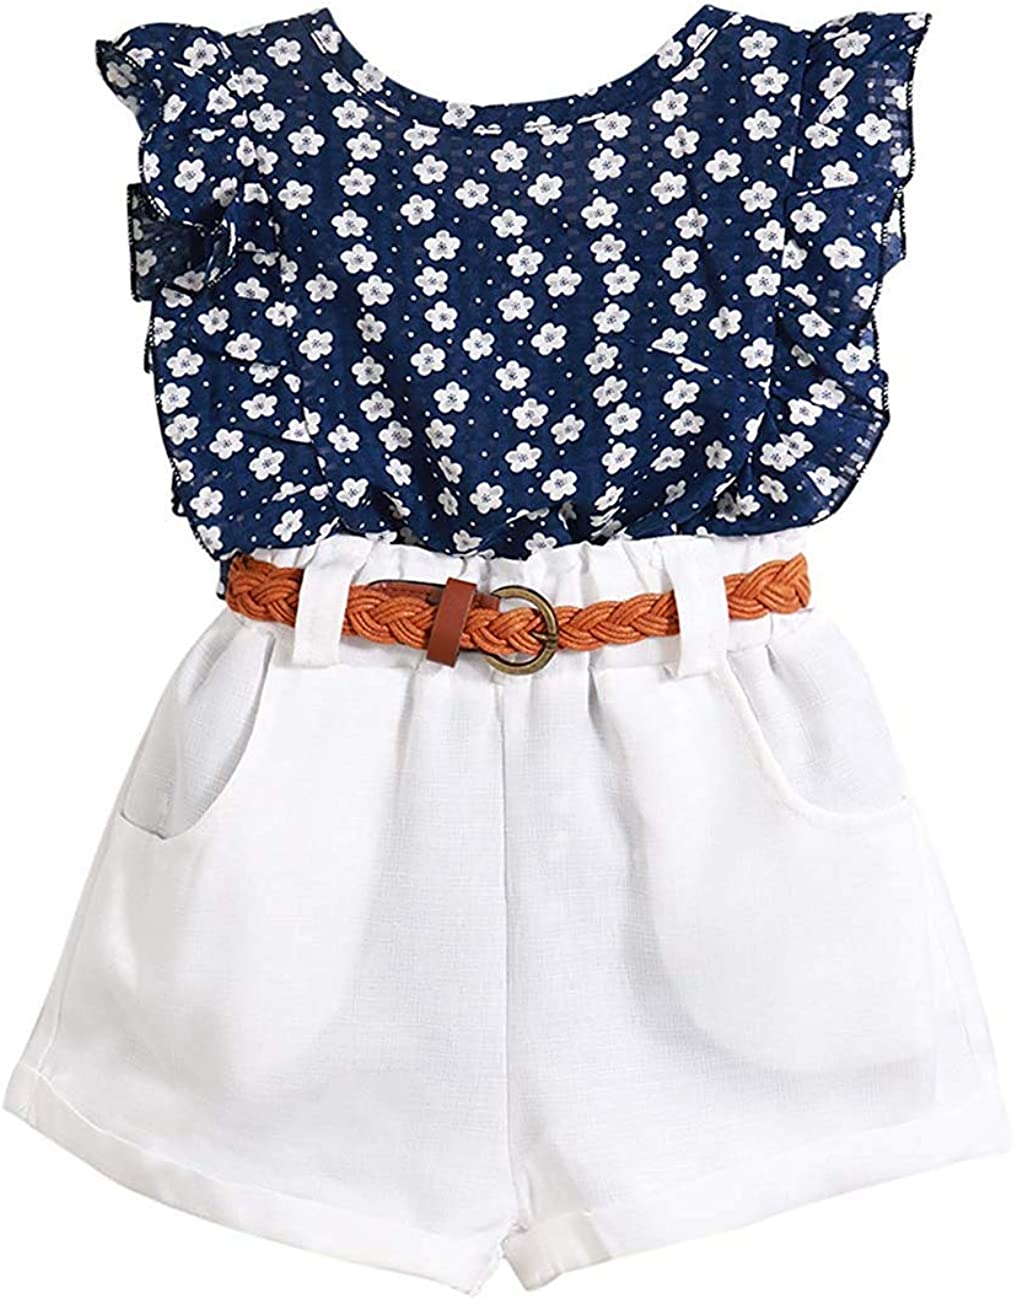 Toddler Girls Clothes Ruffle White Floral T-Shirt Top with Short Pant Casual Summer Outfits